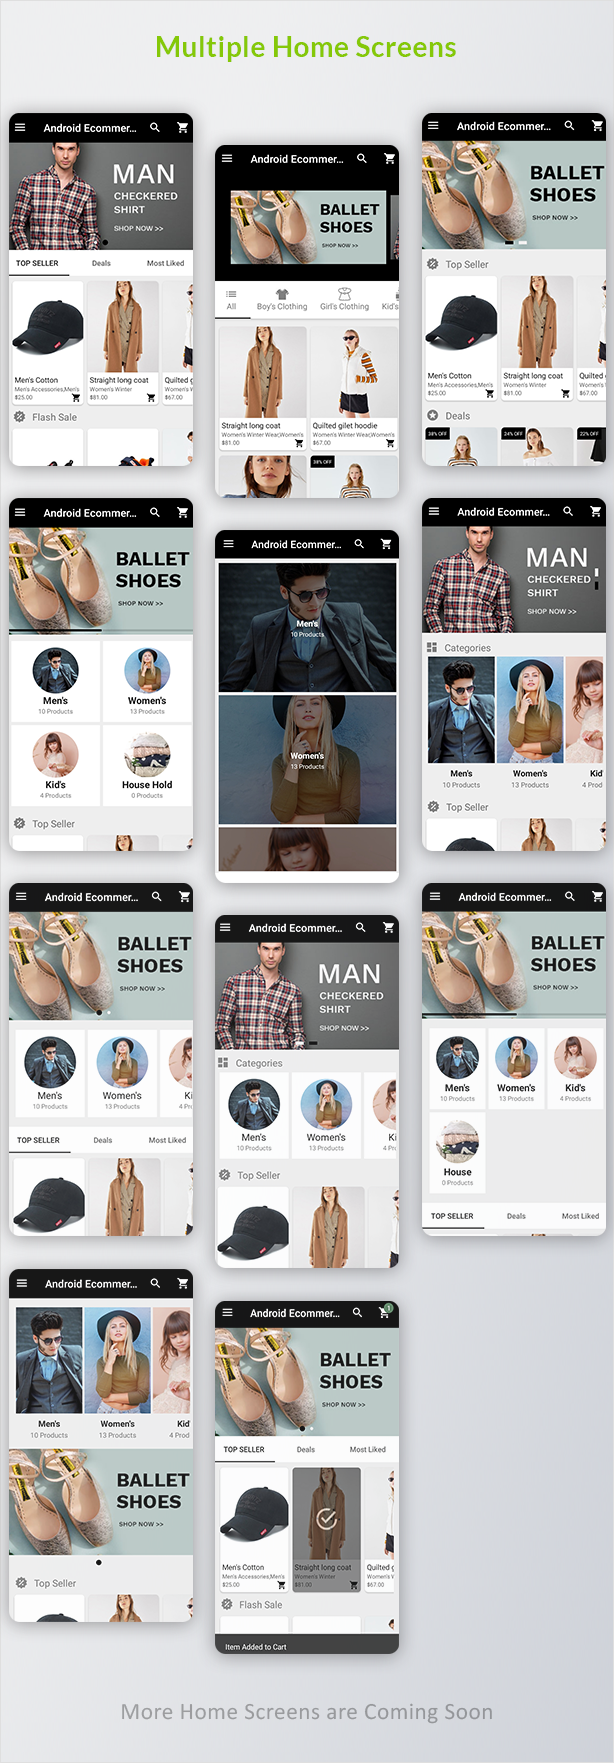 Android Ecommerce - Universal Android Ecommerce / Store Full Mobile App with Laravel CMS - 8